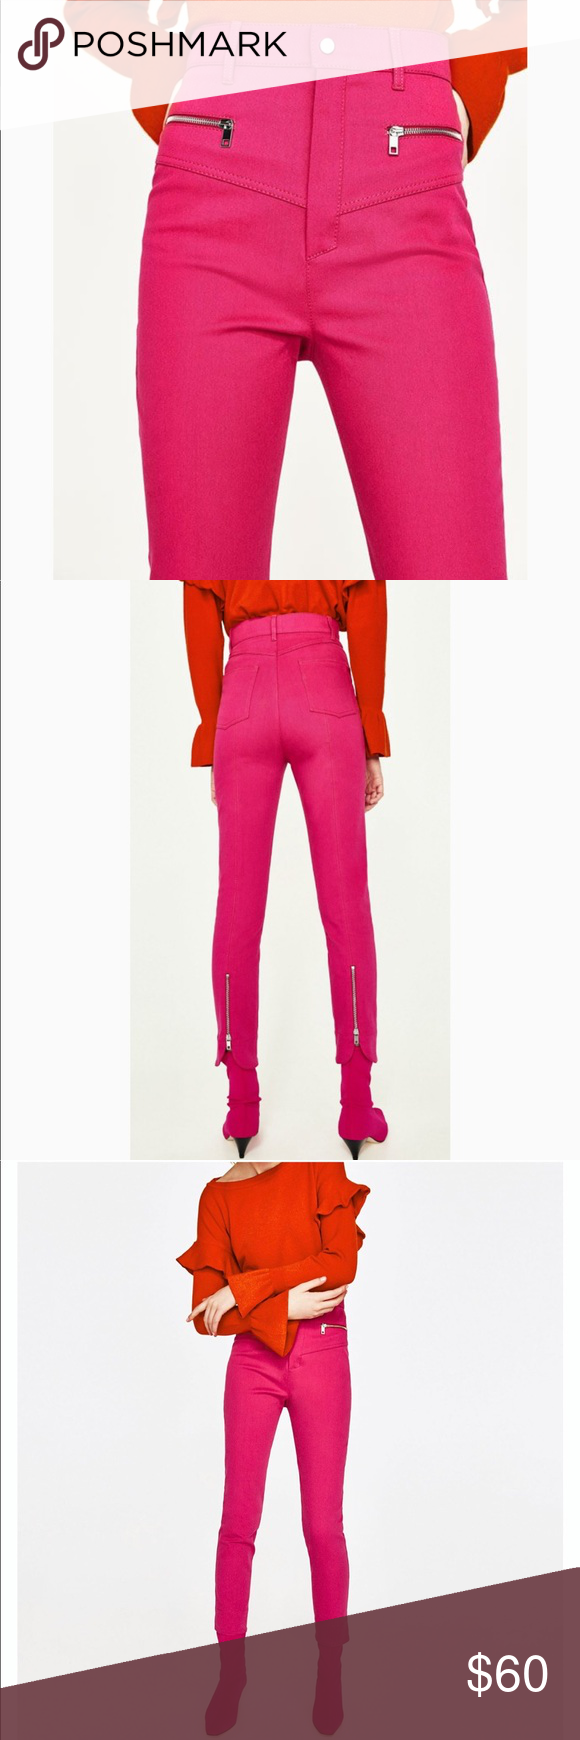 d2e1acef ZARA High Rise Pink Zipper Trouser Pants Jeans NWT Zara Woman Fuchsia Hot  Pink Angle Crop